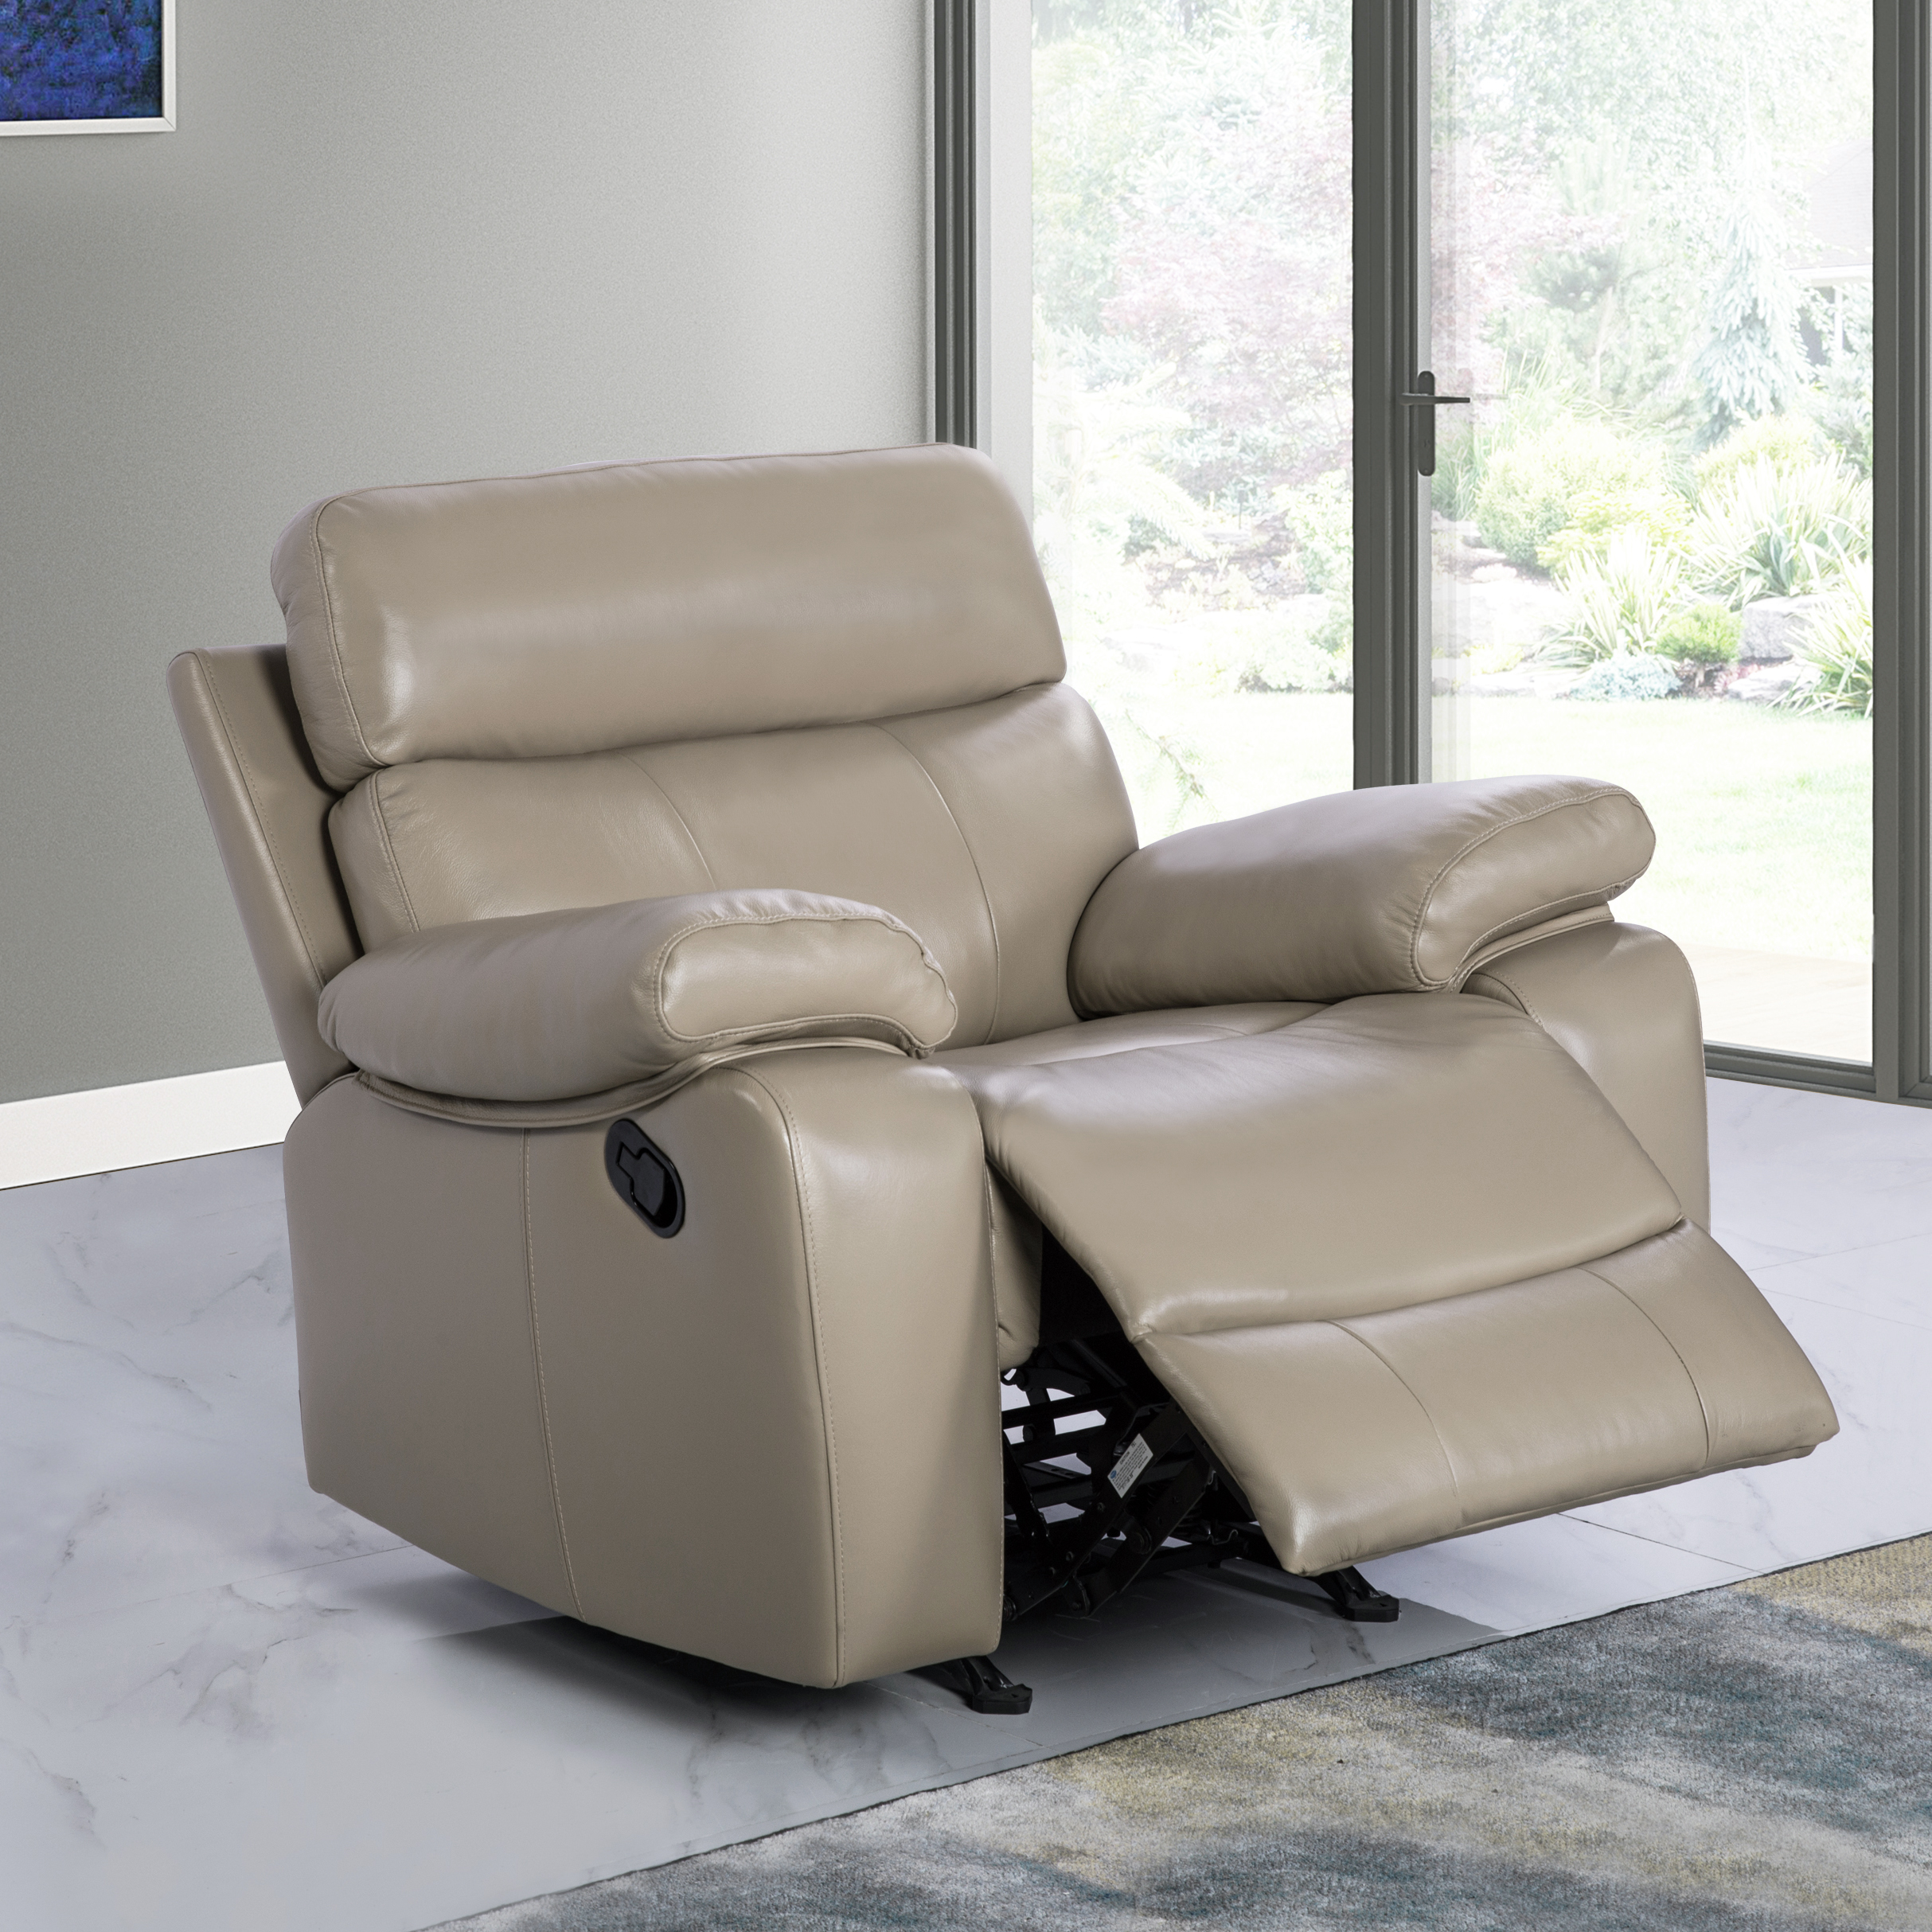 Abbyson Clark Leather Recliner, Beige